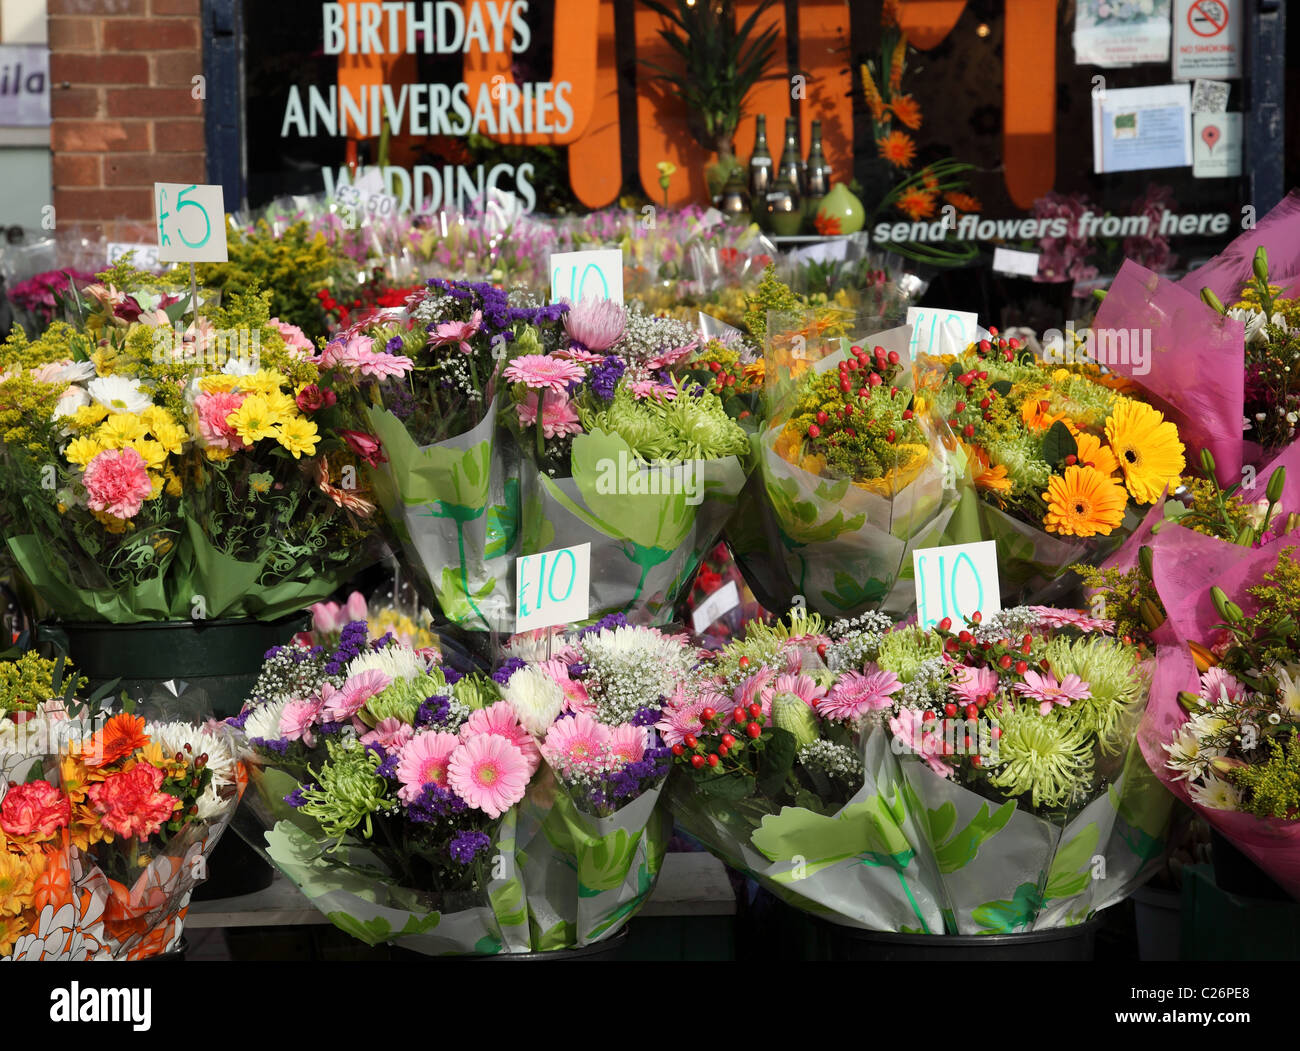 Flowers For Sale At A Florist In The Uk Stock Photo 35799408 Alamy